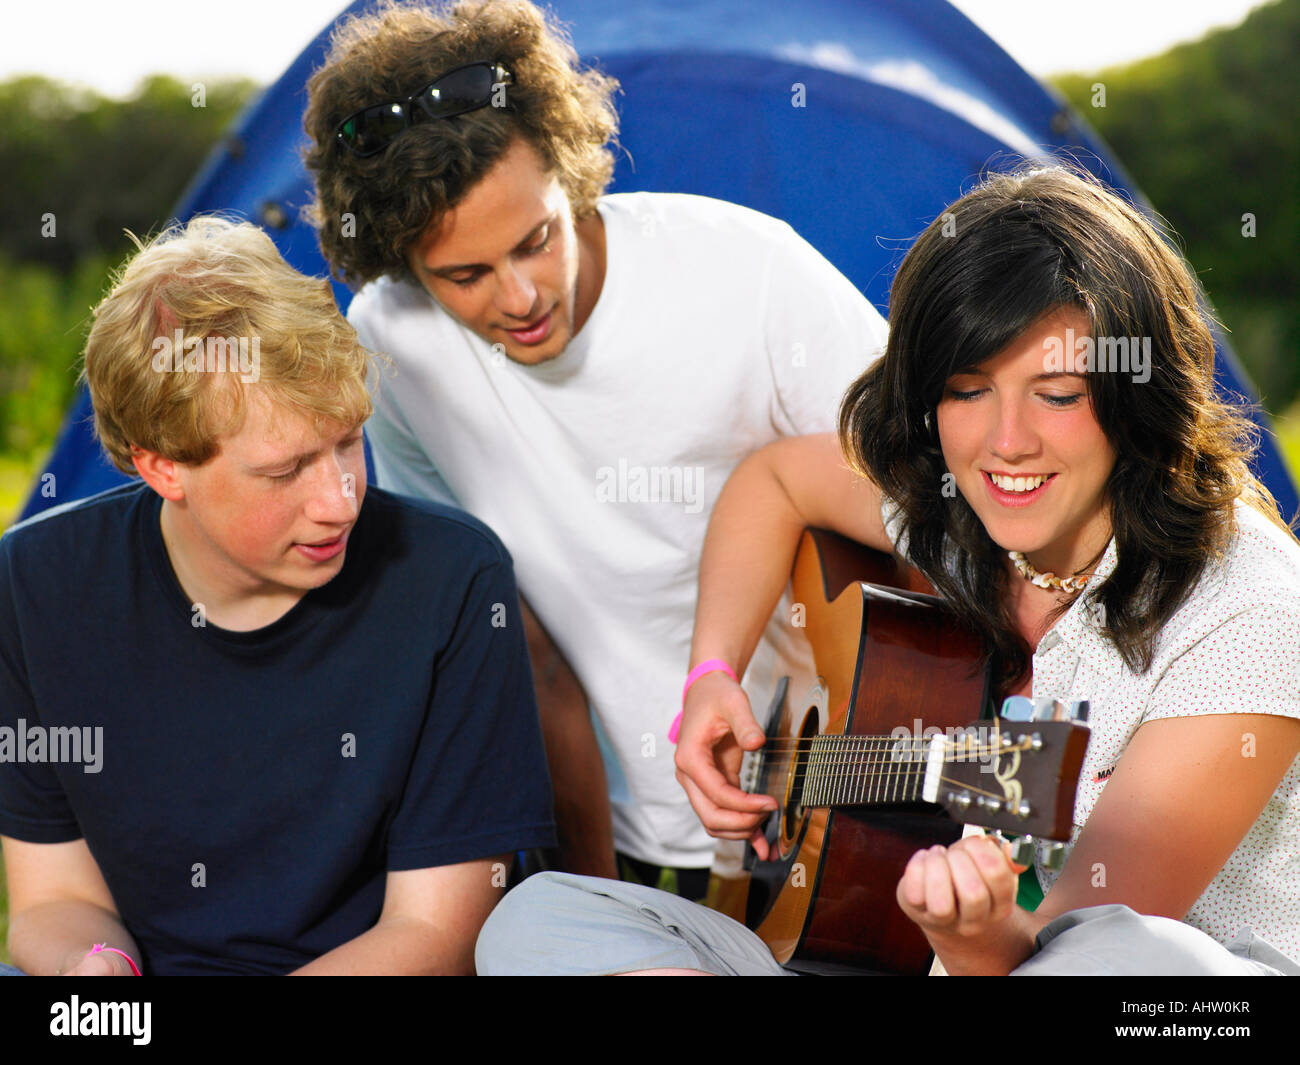 Two young men watching girl playing guitar - Stock Image